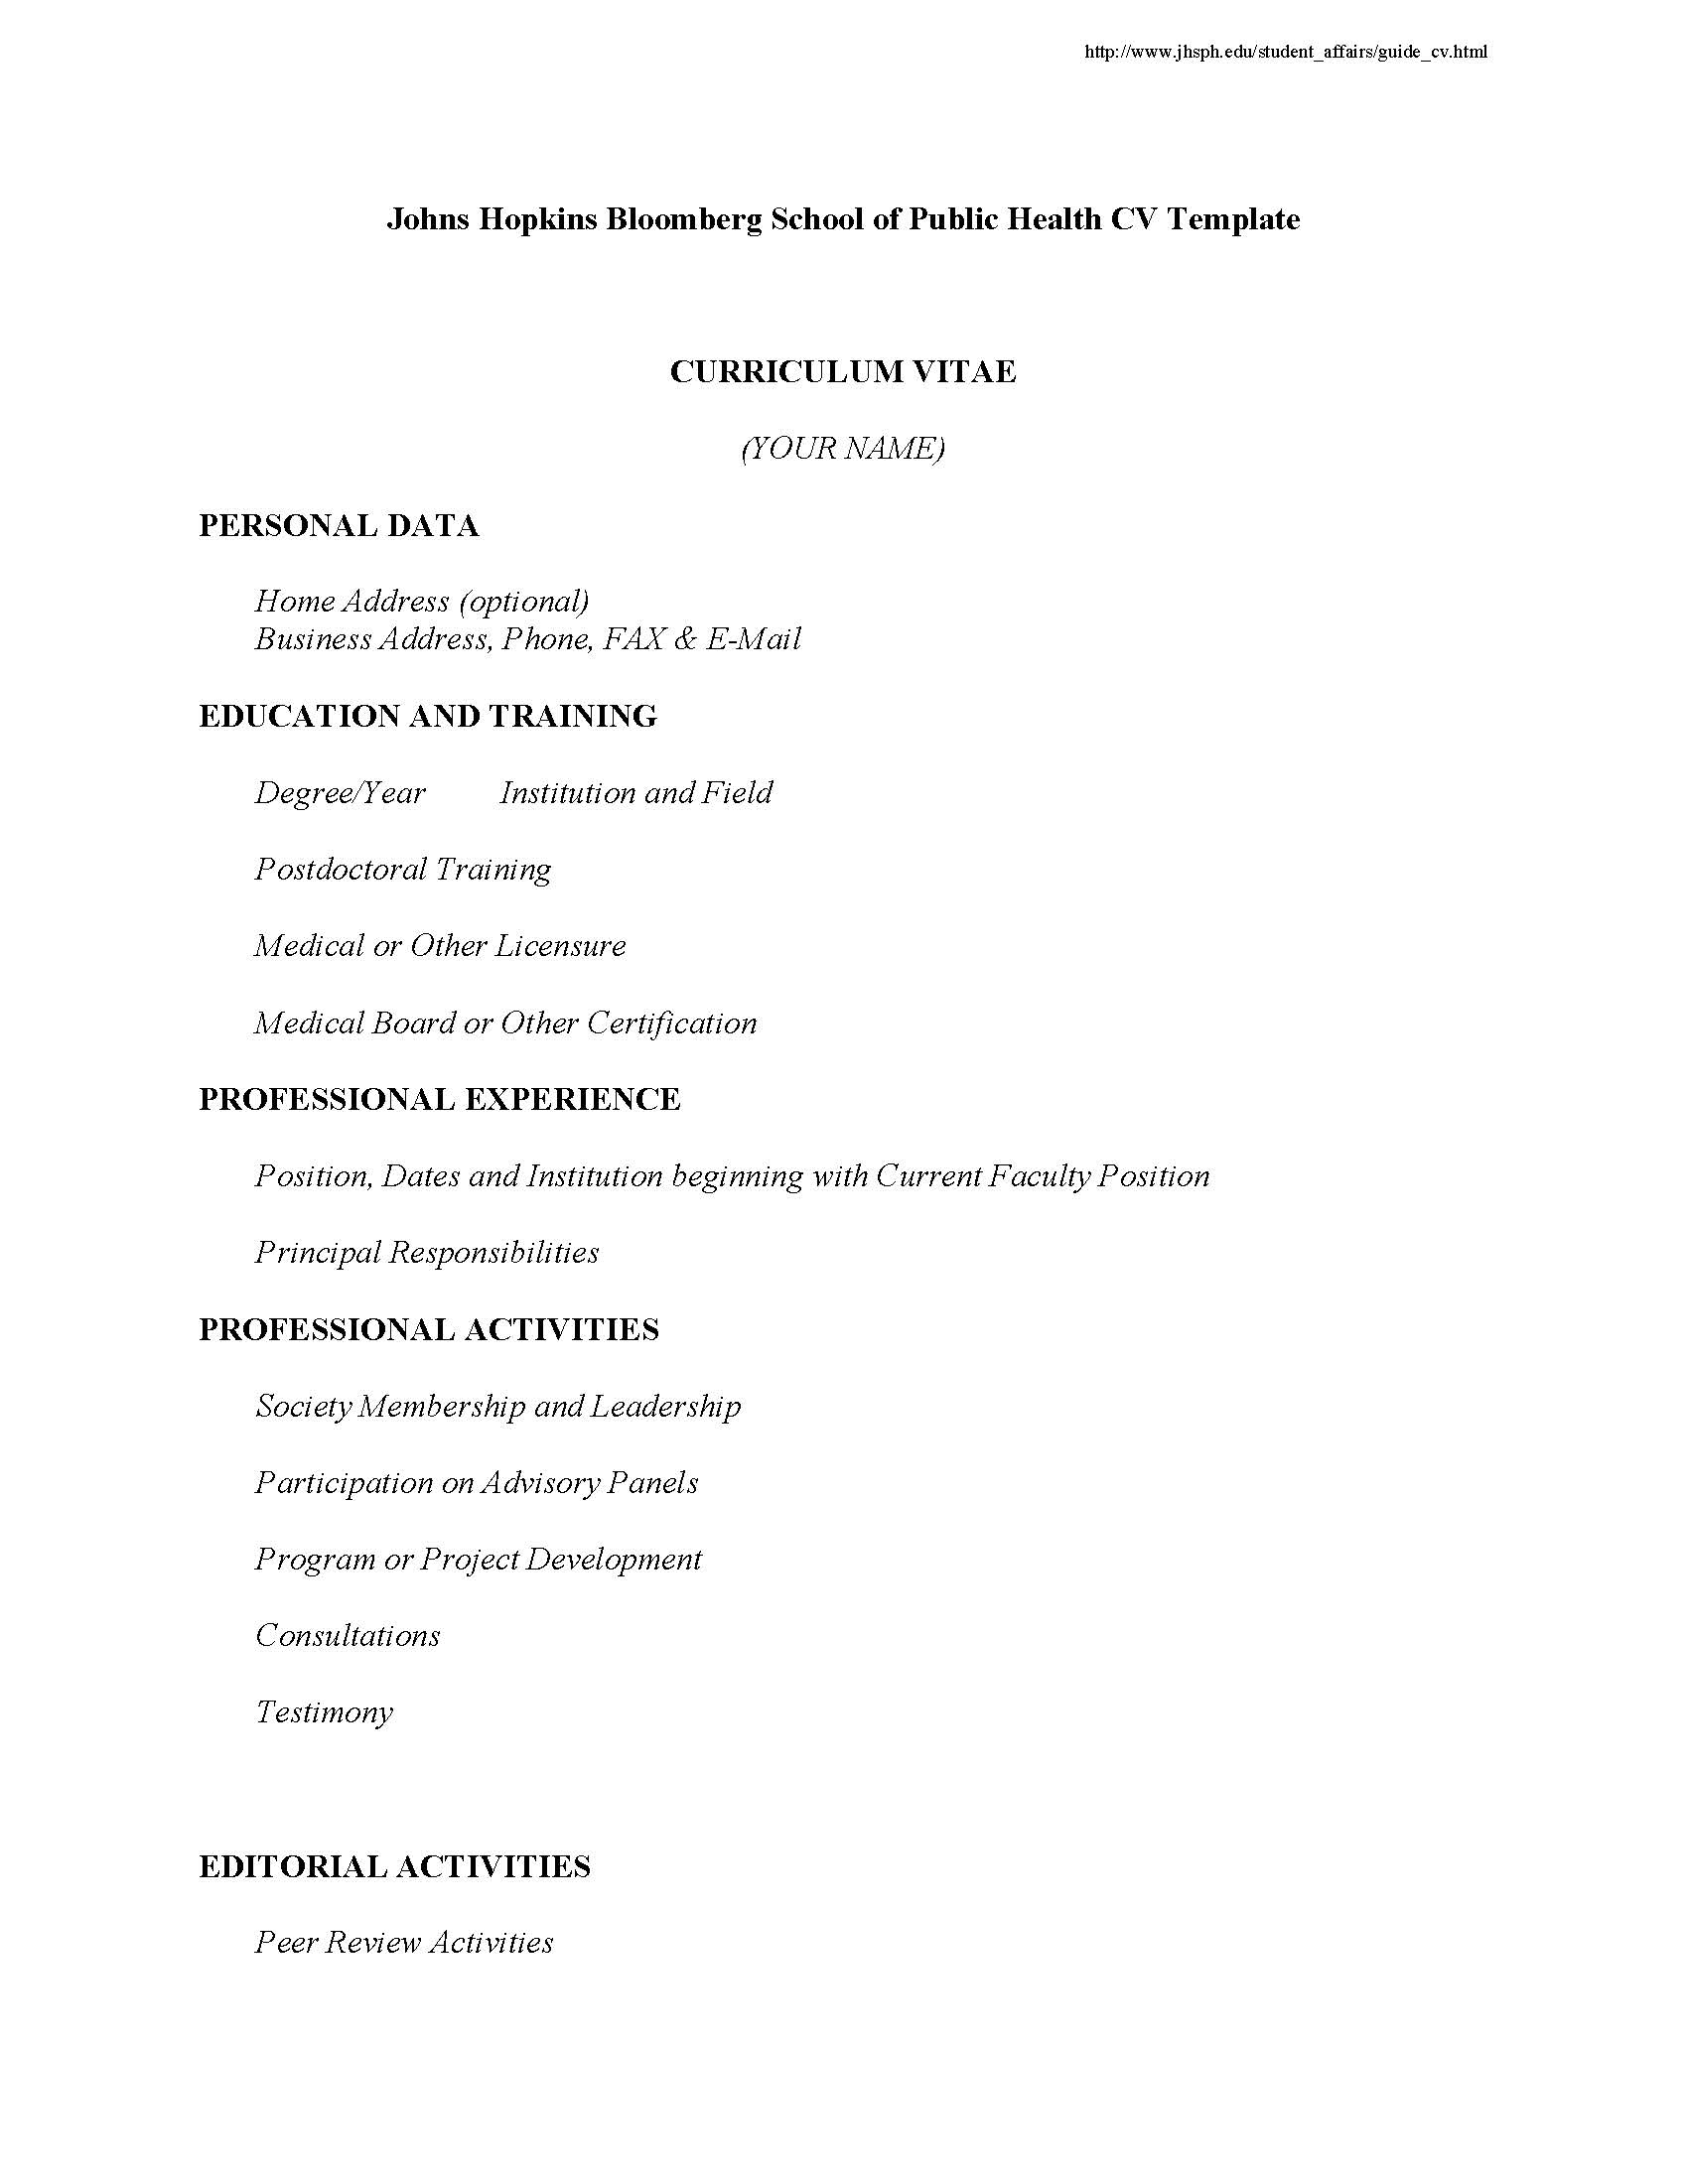 resumes and cvs - career resources - for students